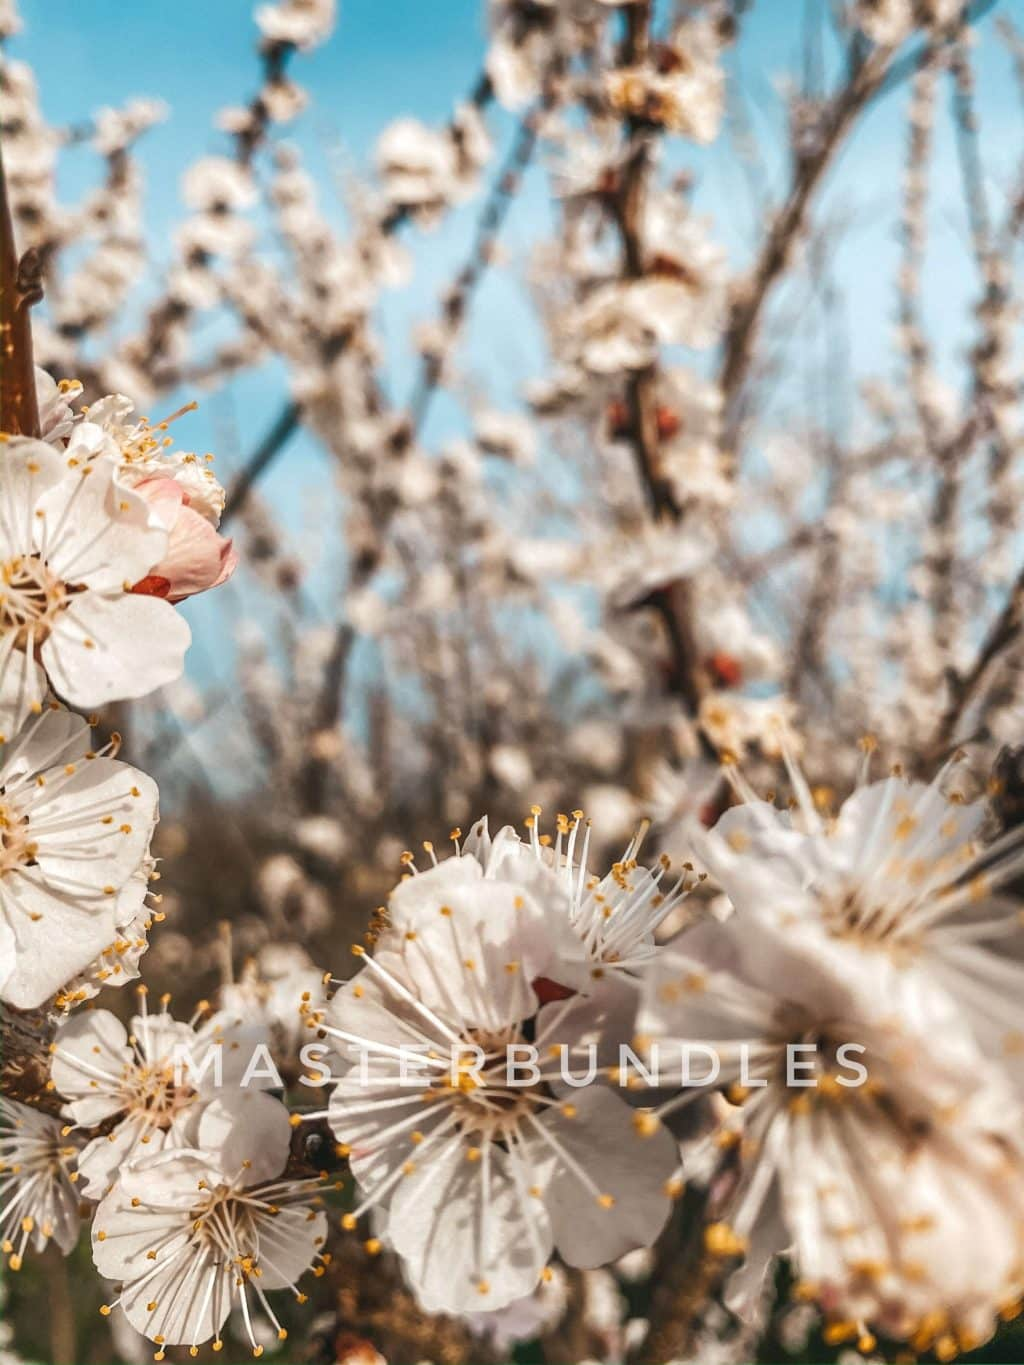 Free Spring Wallpaper Collection: Spring Flowers Wallpaper for iPhone - spring wallpaper11